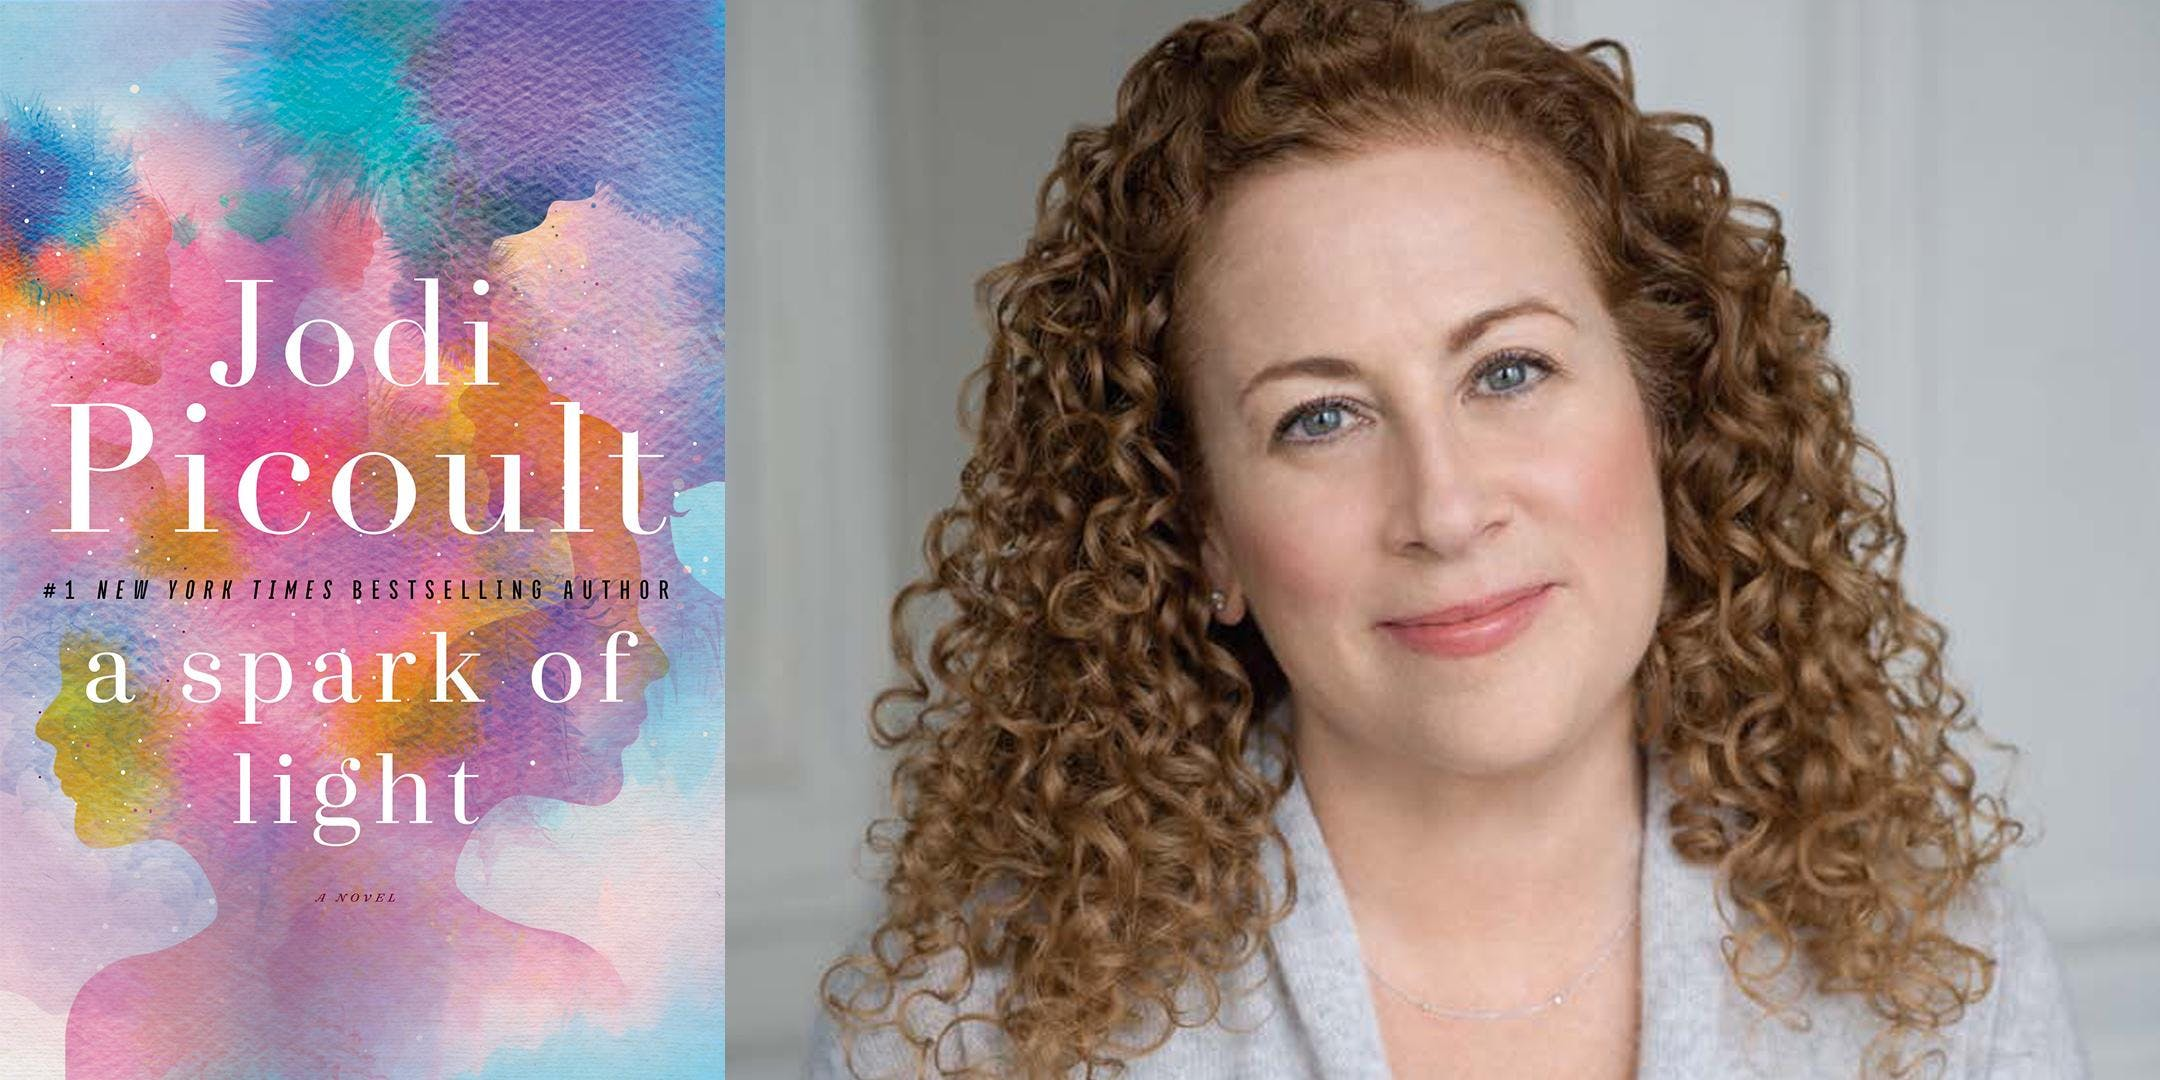 Changing Hands presents Jodi Picoult: A Spark of Light